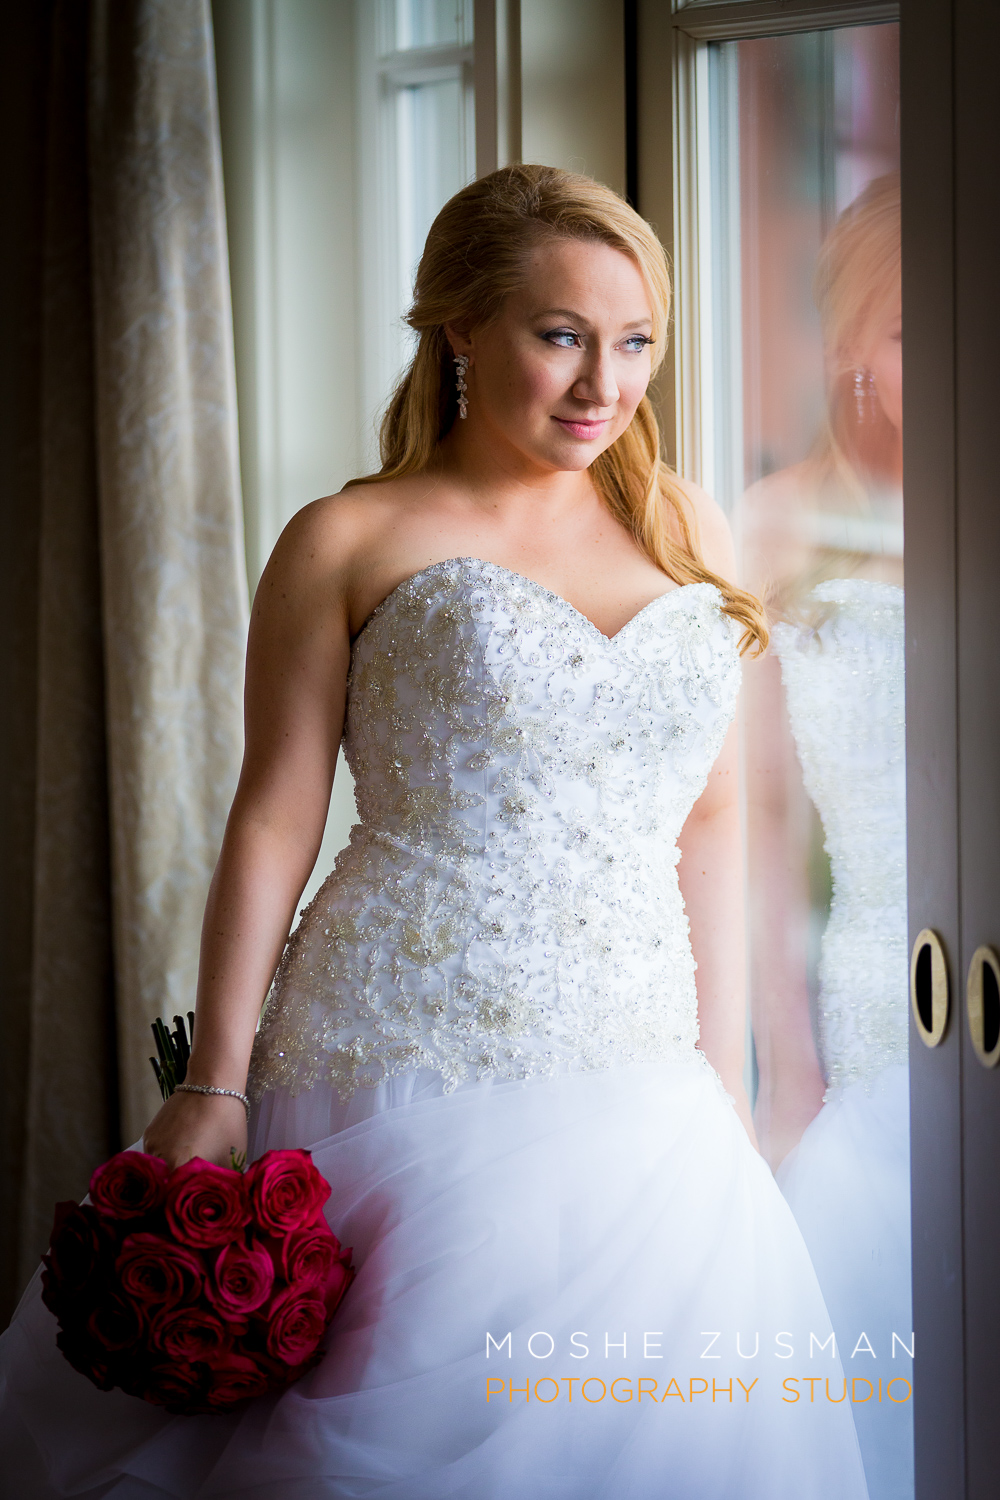 Hay Adams DC Wedding Photographer Moshe Zusman 10.jpg